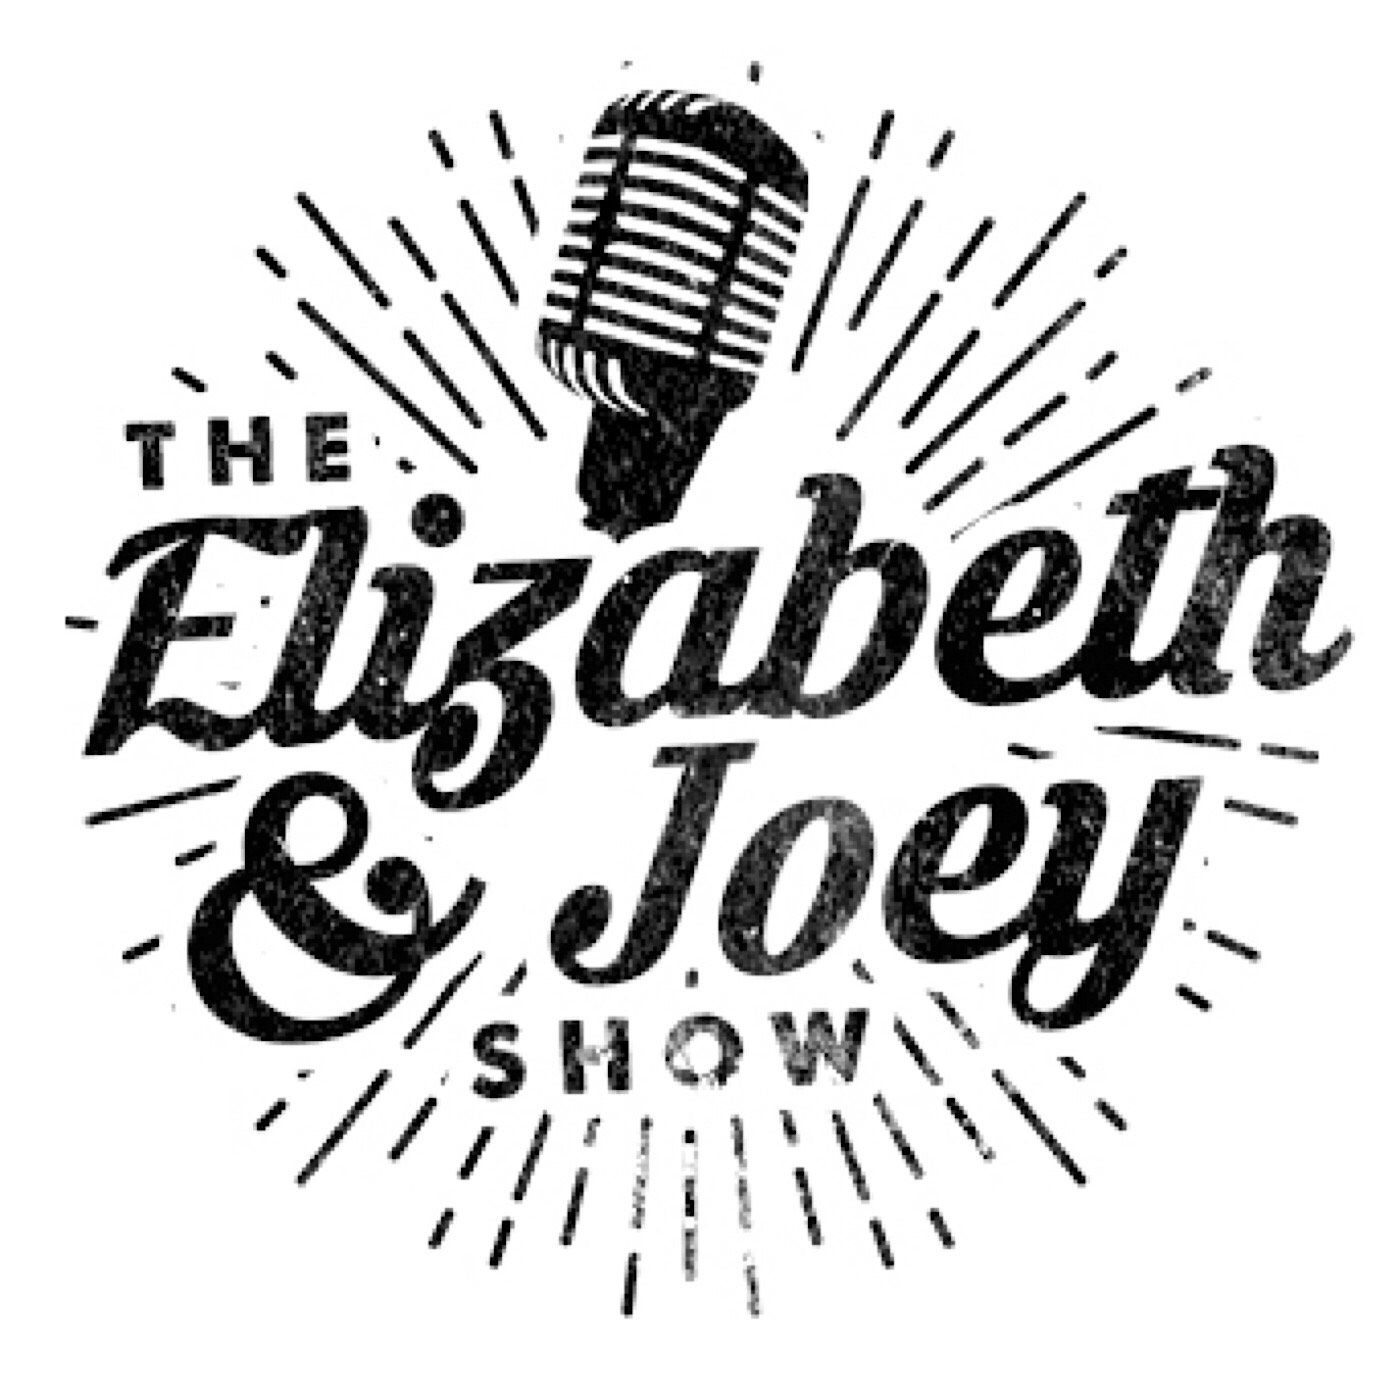 The Elizabeth & Joey Show